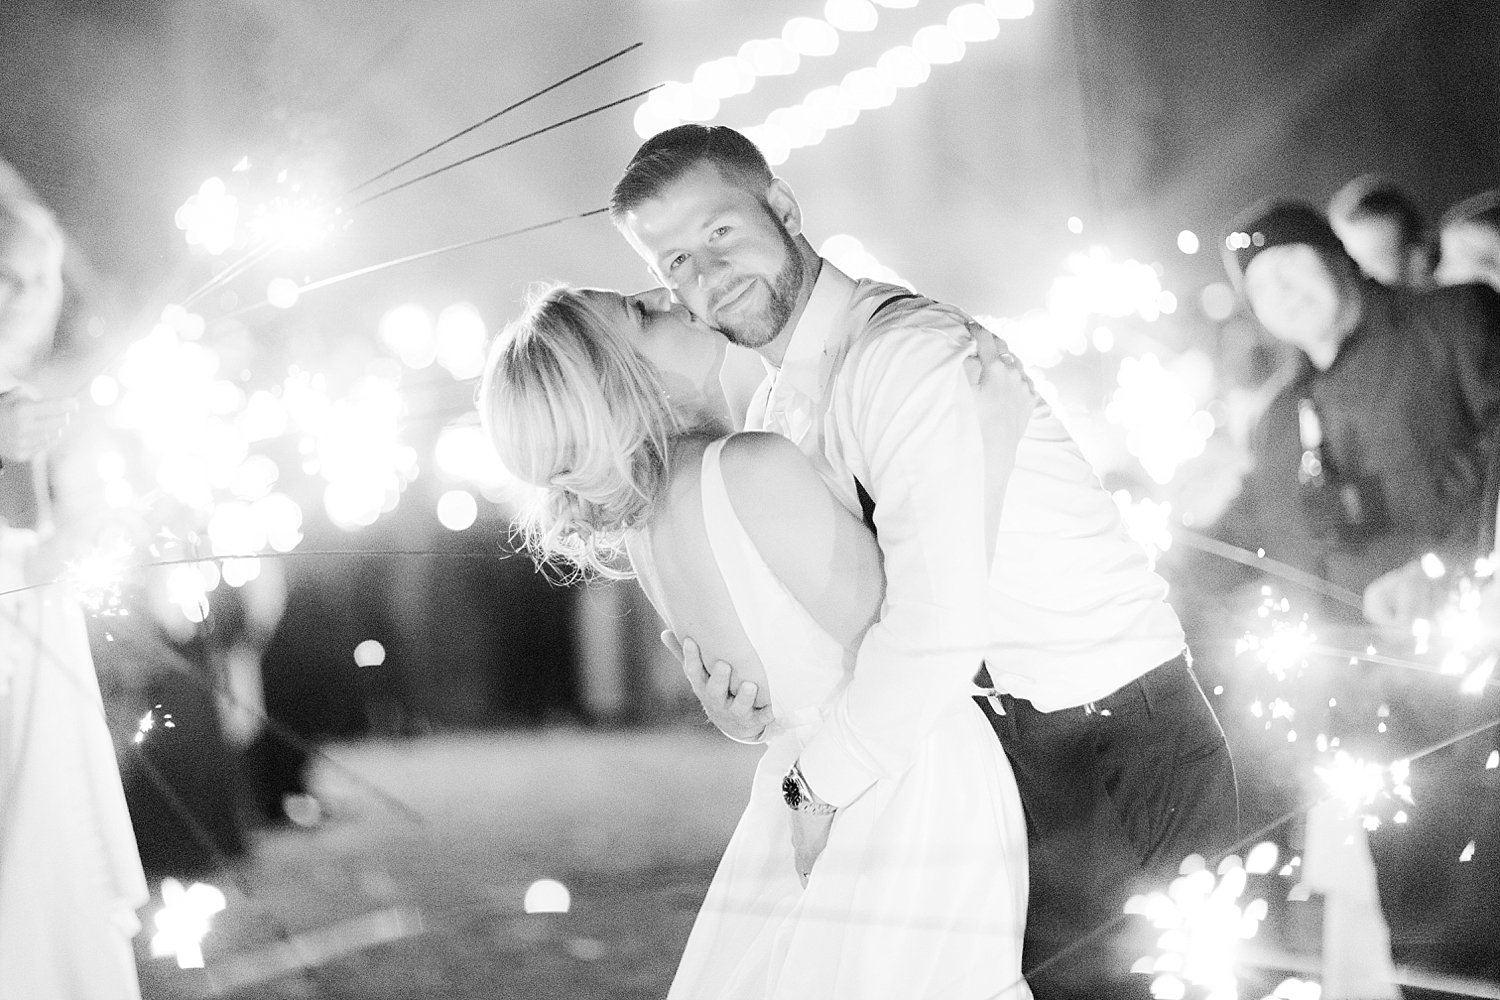 sparkler photo without flash by jacnjules at Covered Bridge Barn in NY